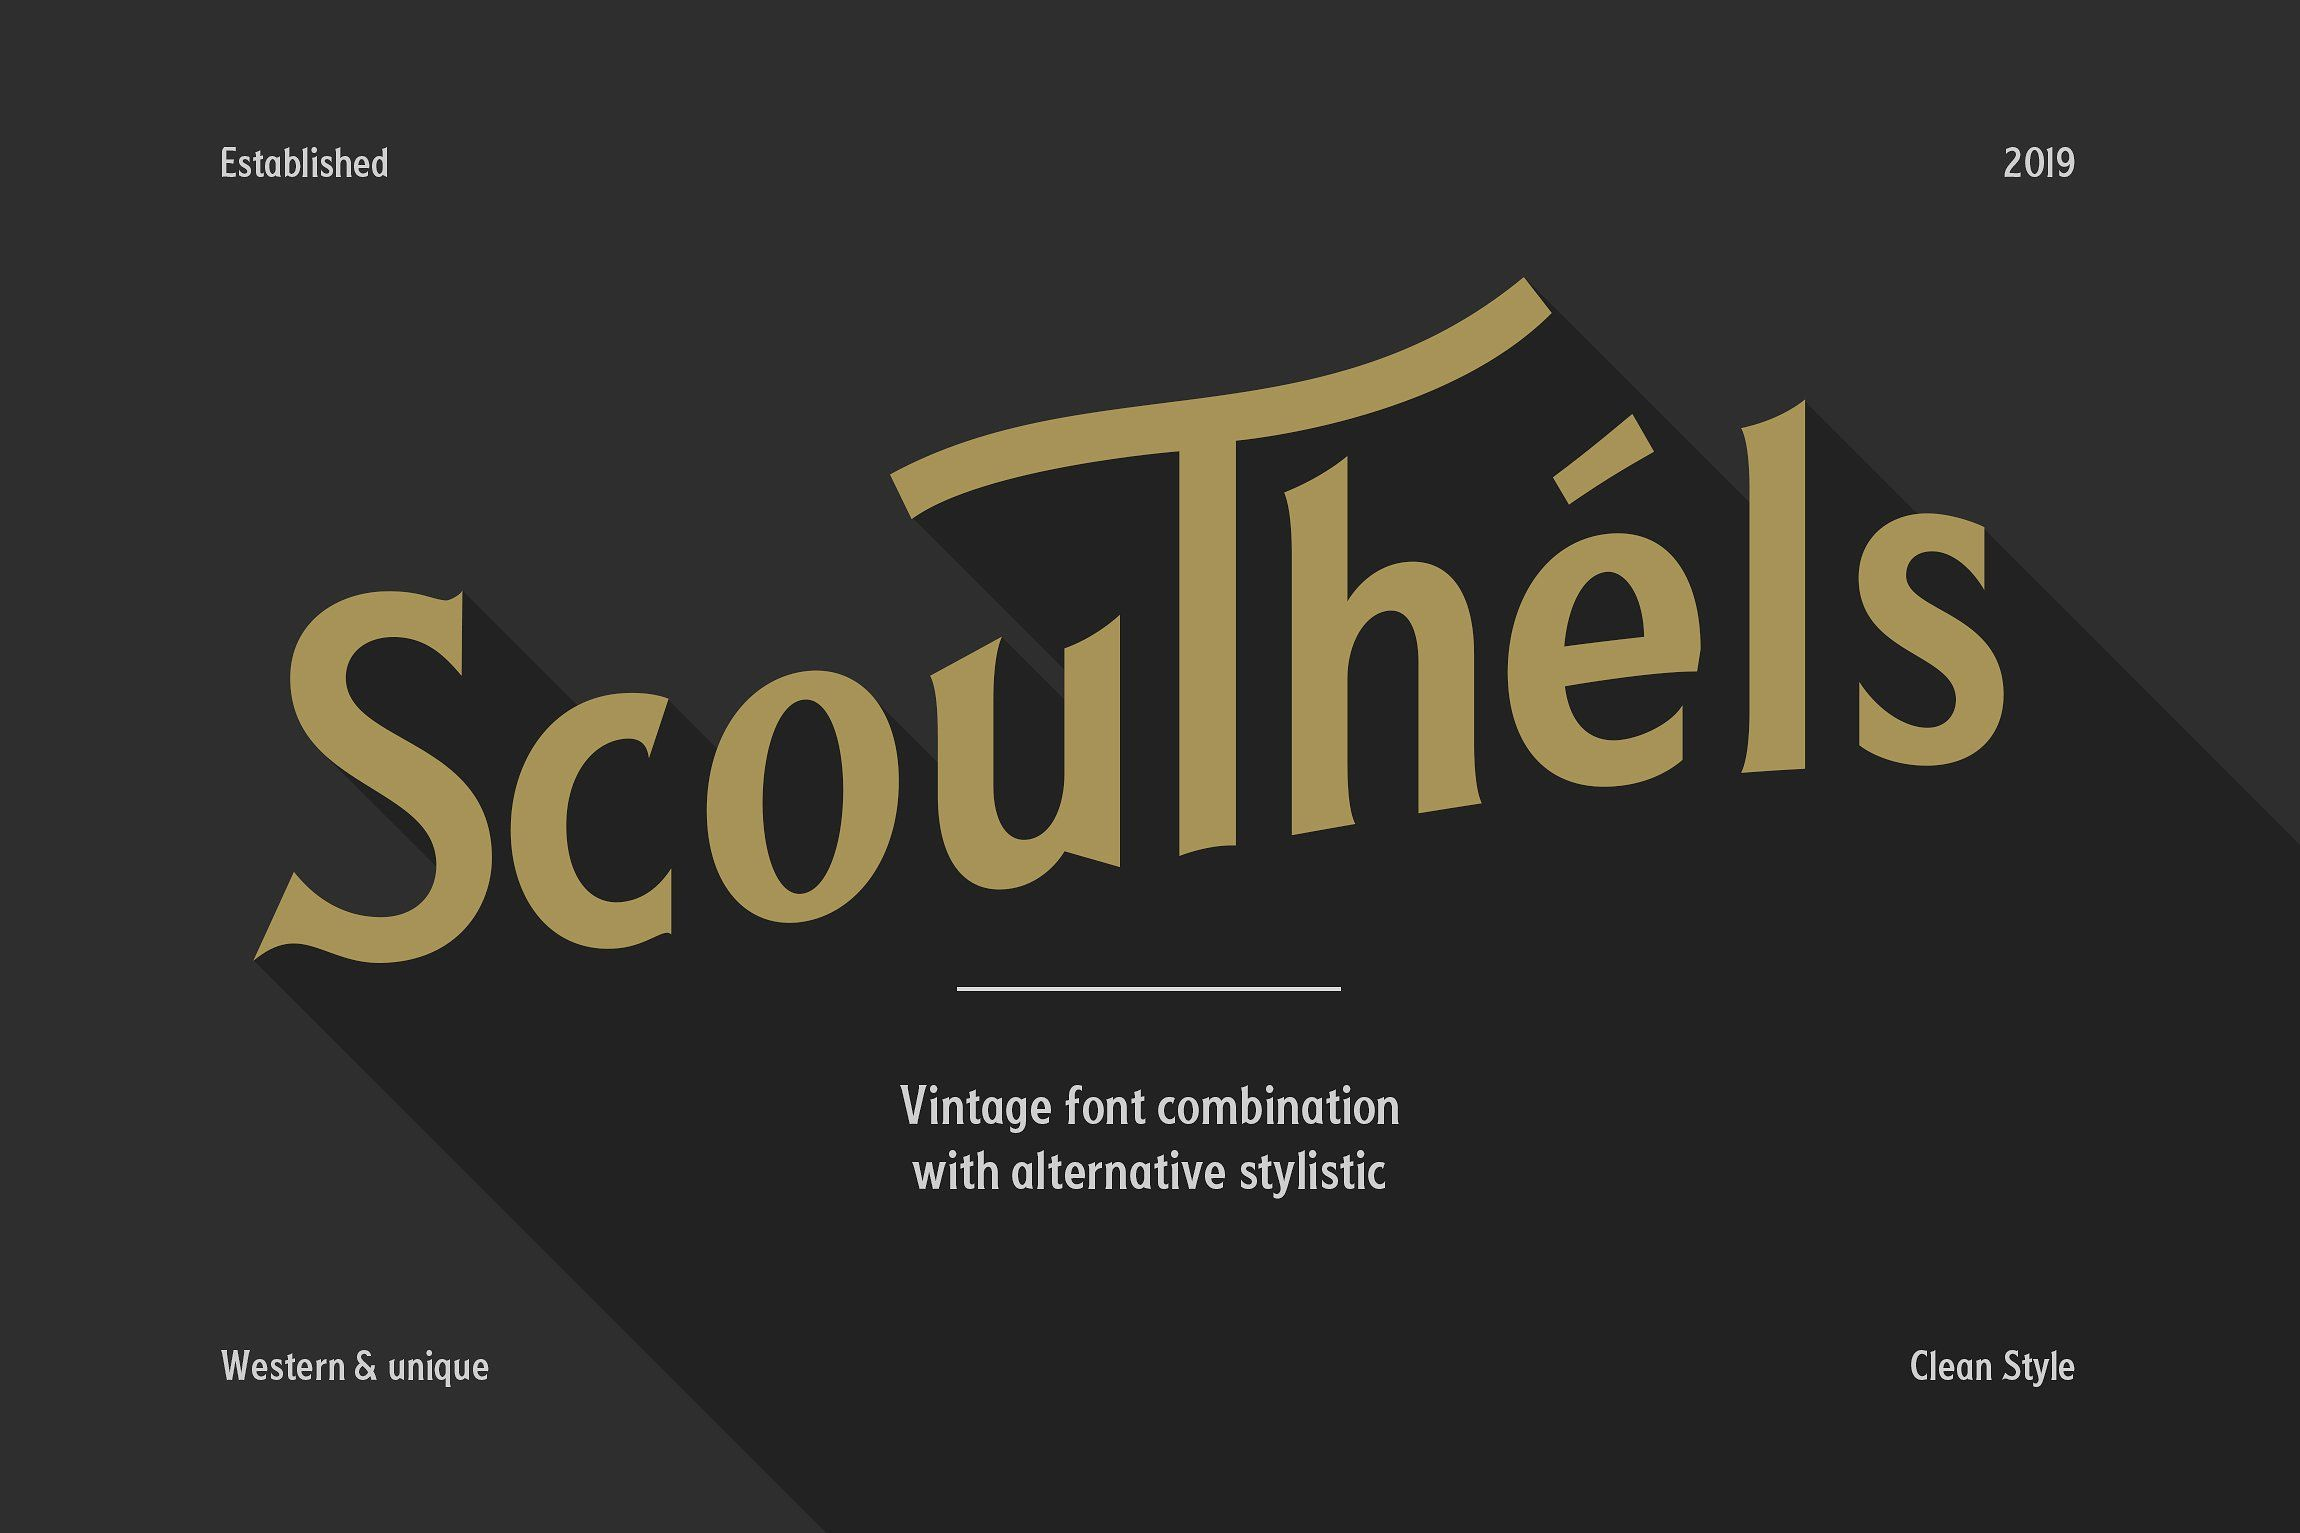 Scouthels Typeface - Clean Sans Font by Maulana Creative on